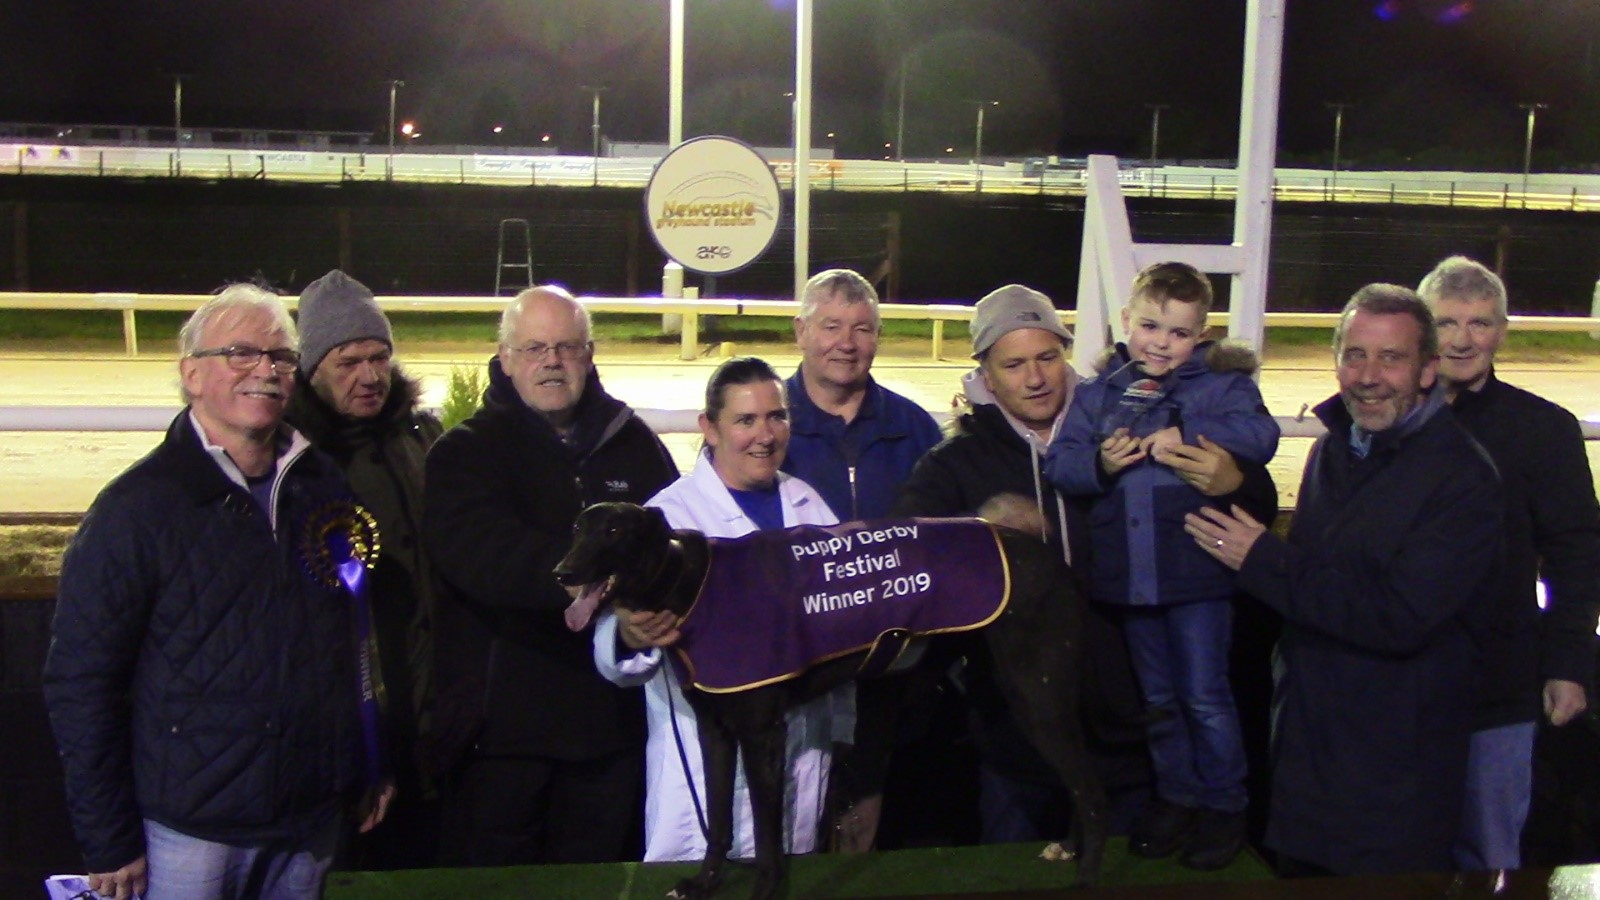 Droopys Reel wins at Newcastle on 21 December 2019 With Owners Mick Bellas, Kenny Campbell, Don Thompson  Billy Thomson